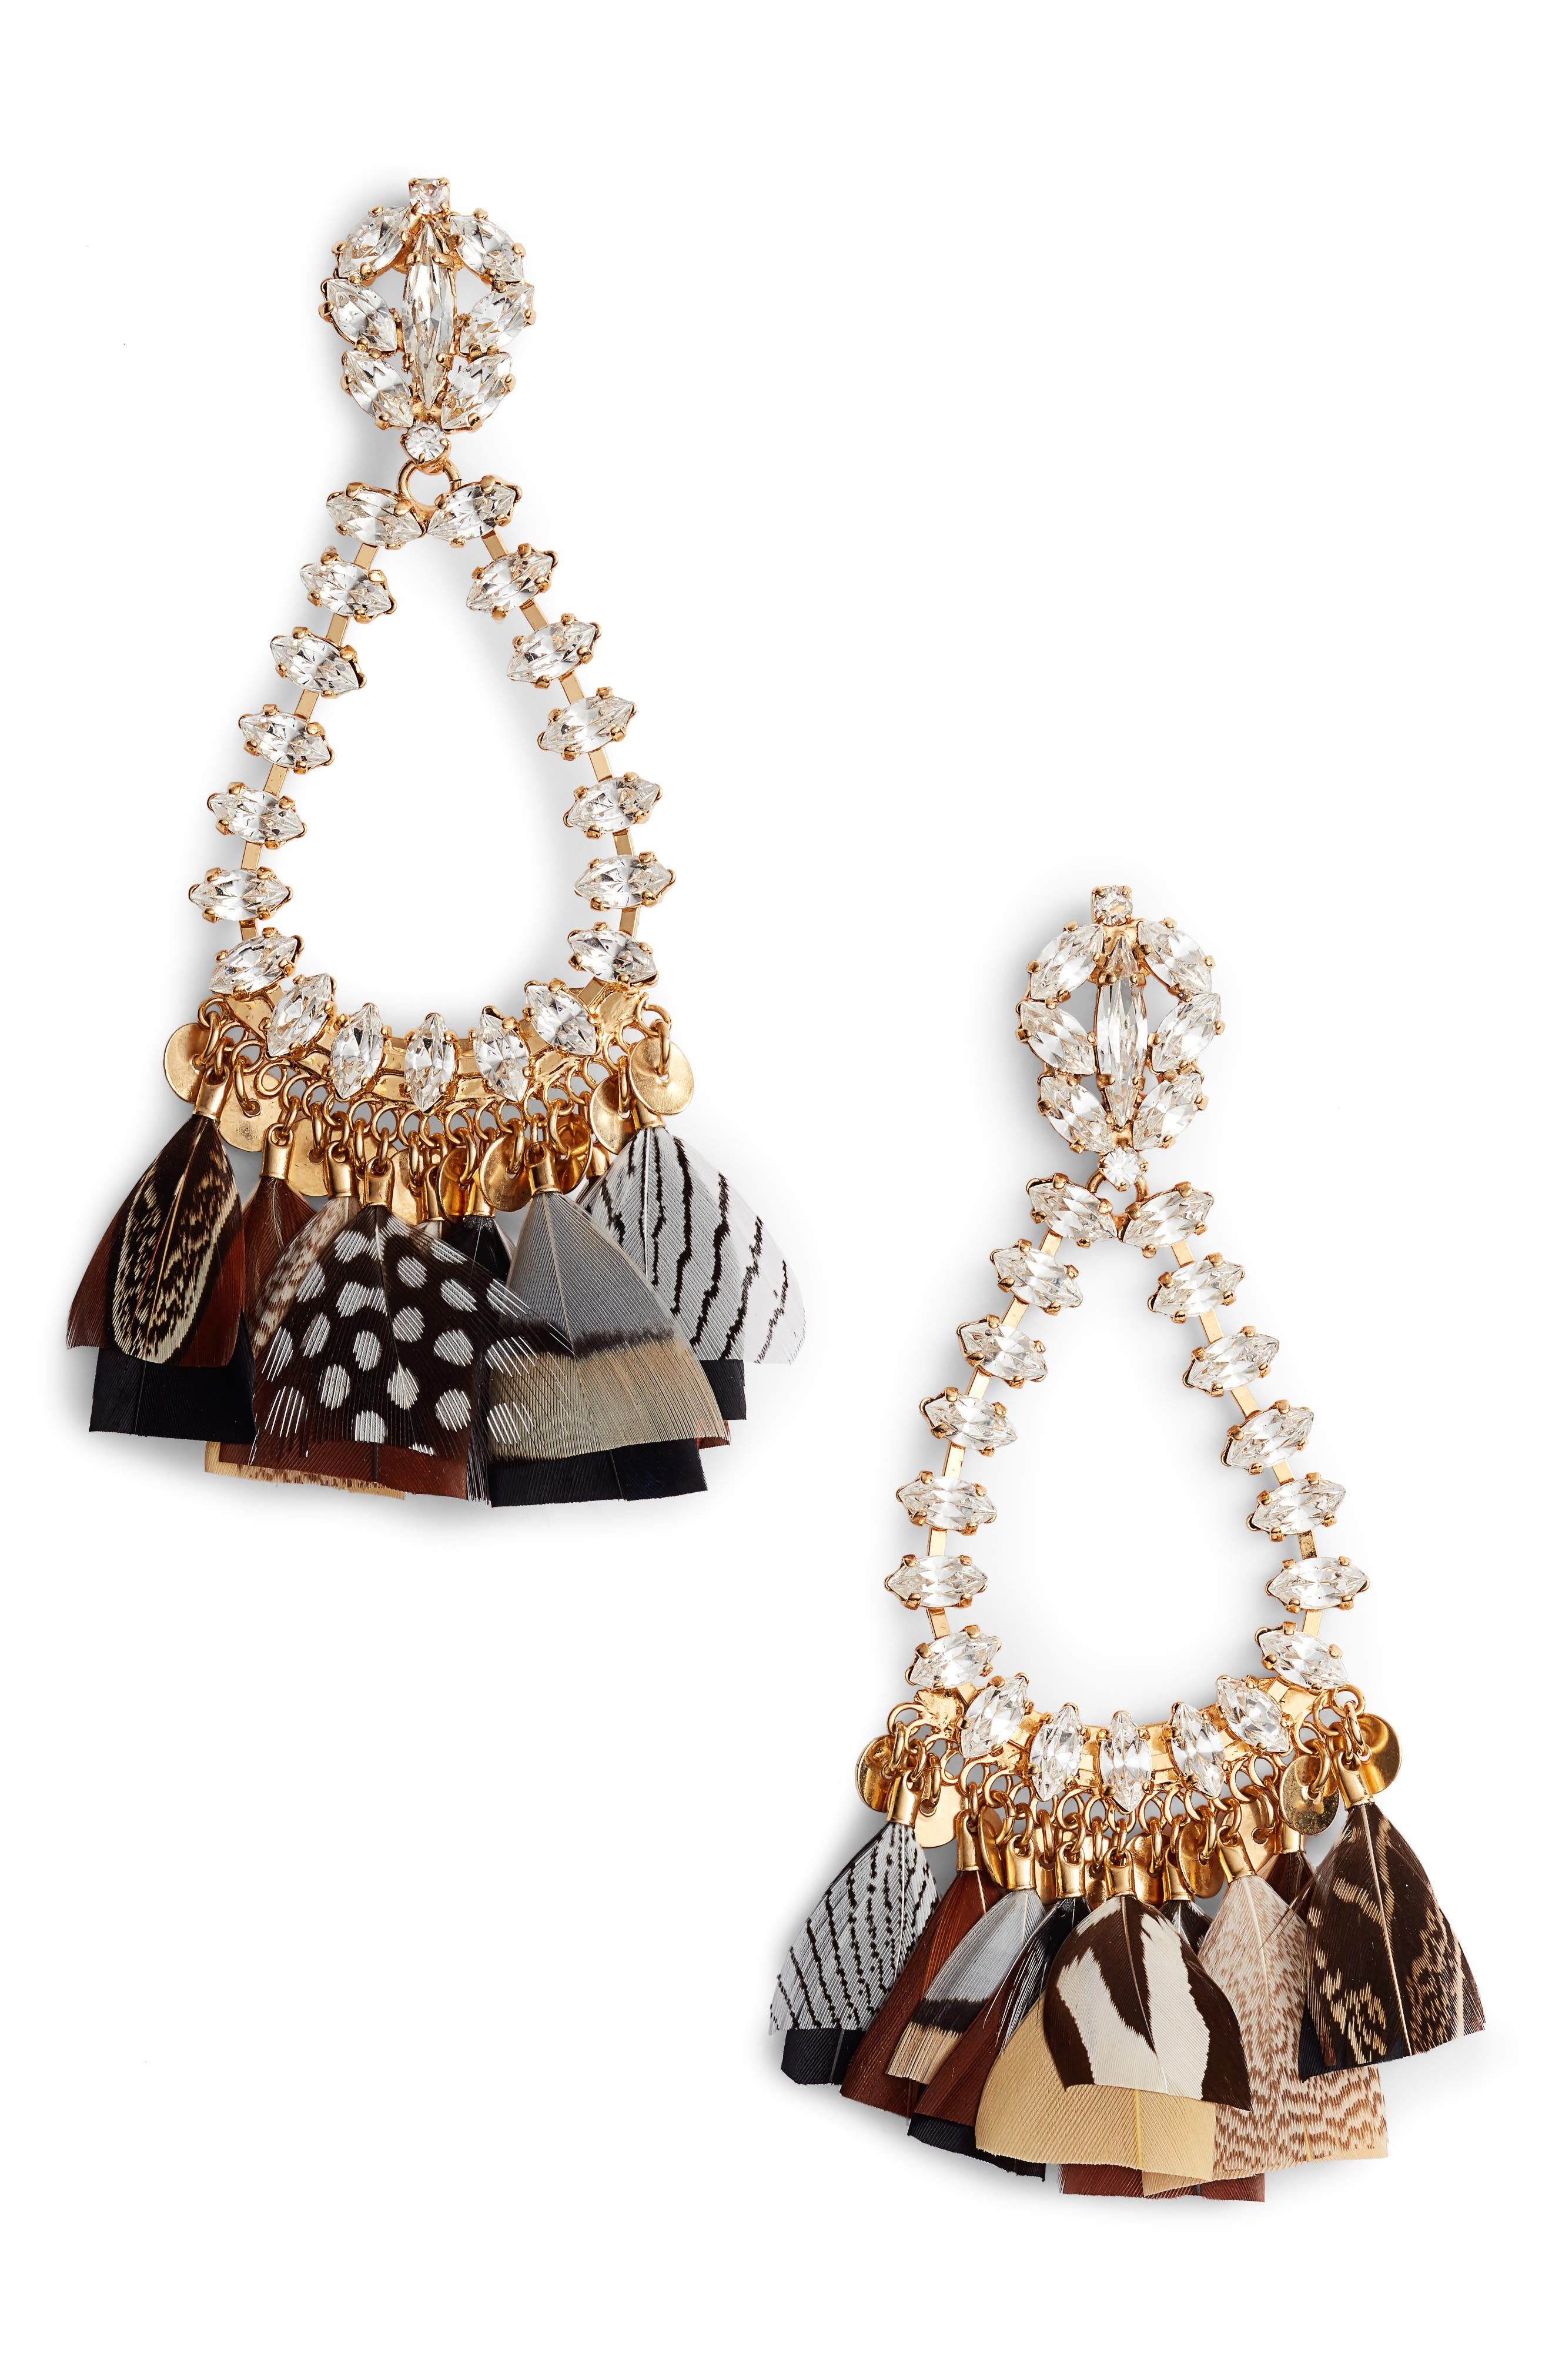 Riviera Statement Earrings,                             Main thumbnail 1, color,                             Black/ Gold